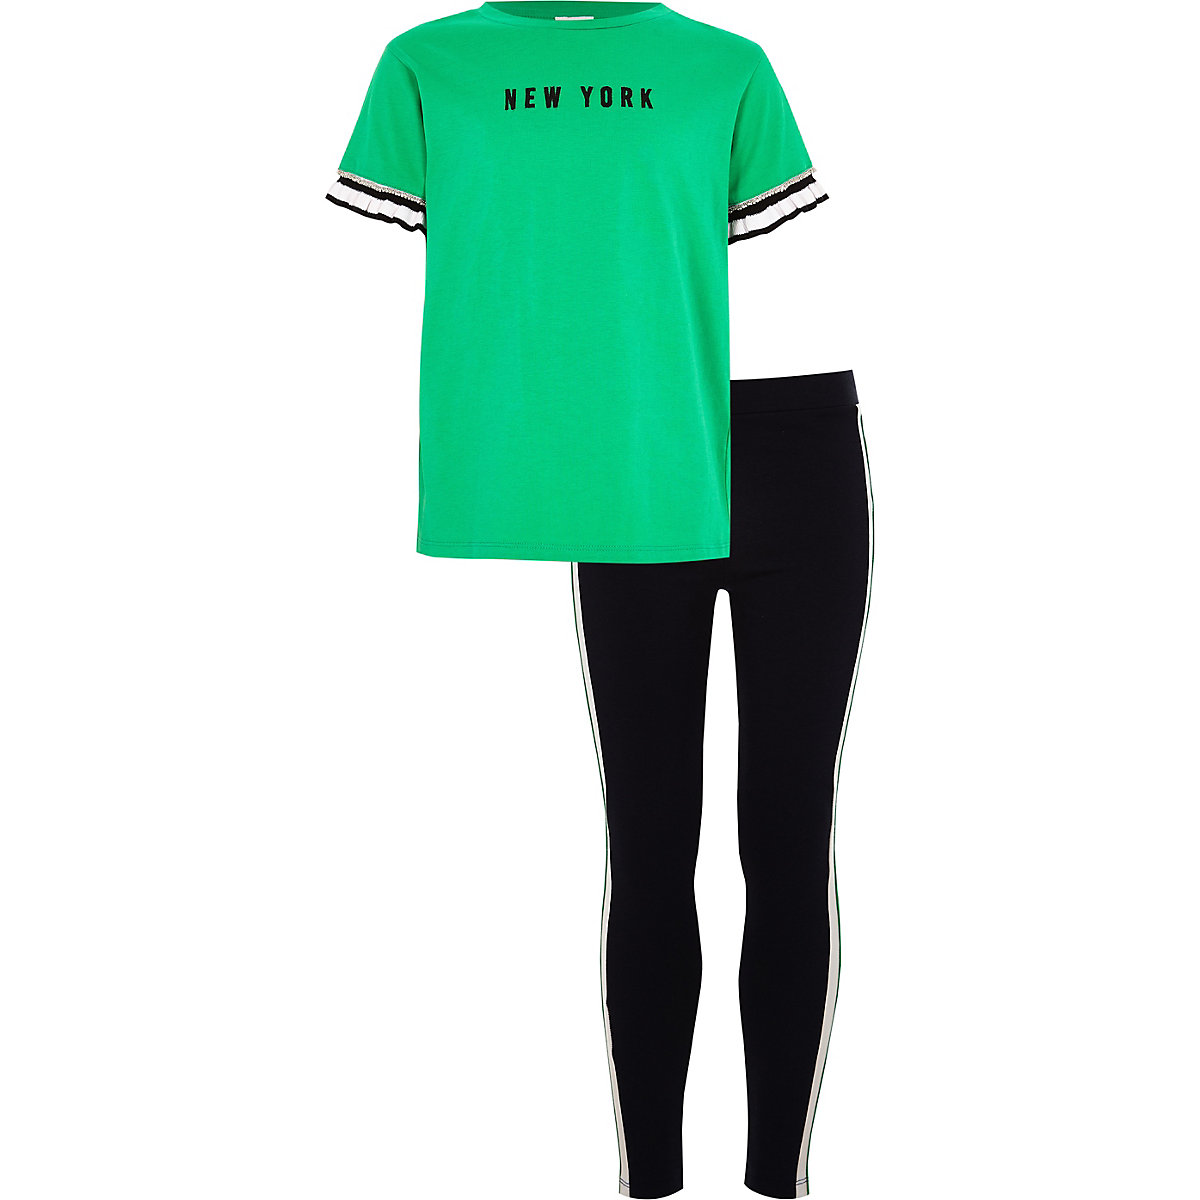 Girls green 'New York' T-shirt outfit